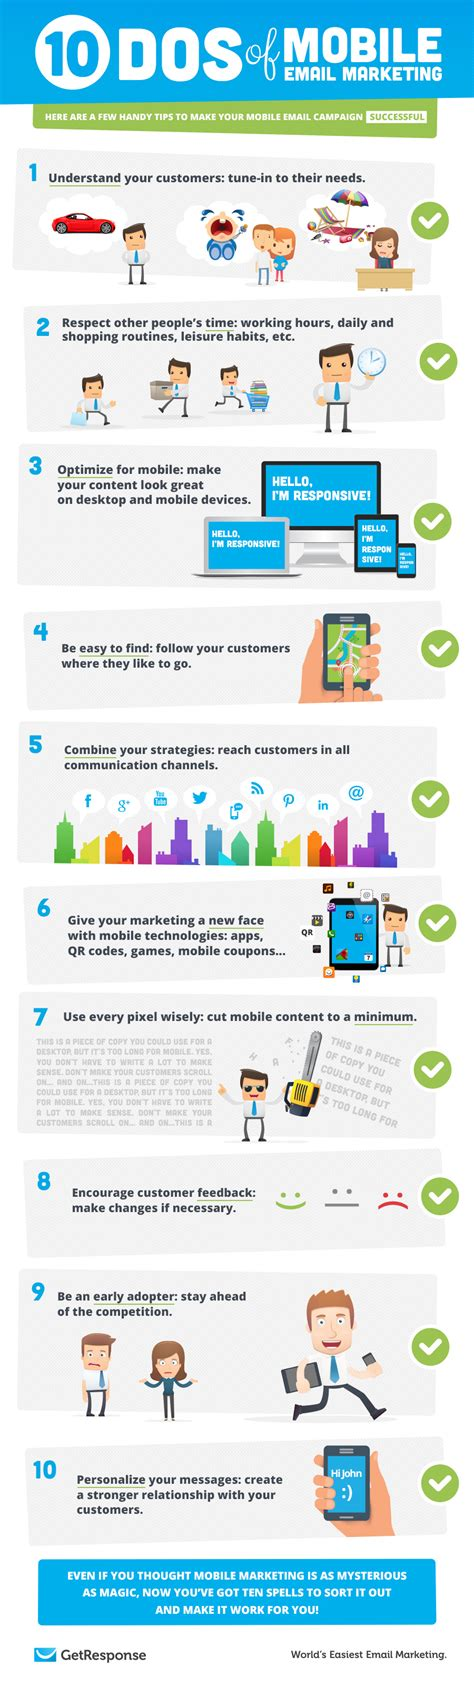 mobile email marketing 10 dos of mobile email marketing infographic